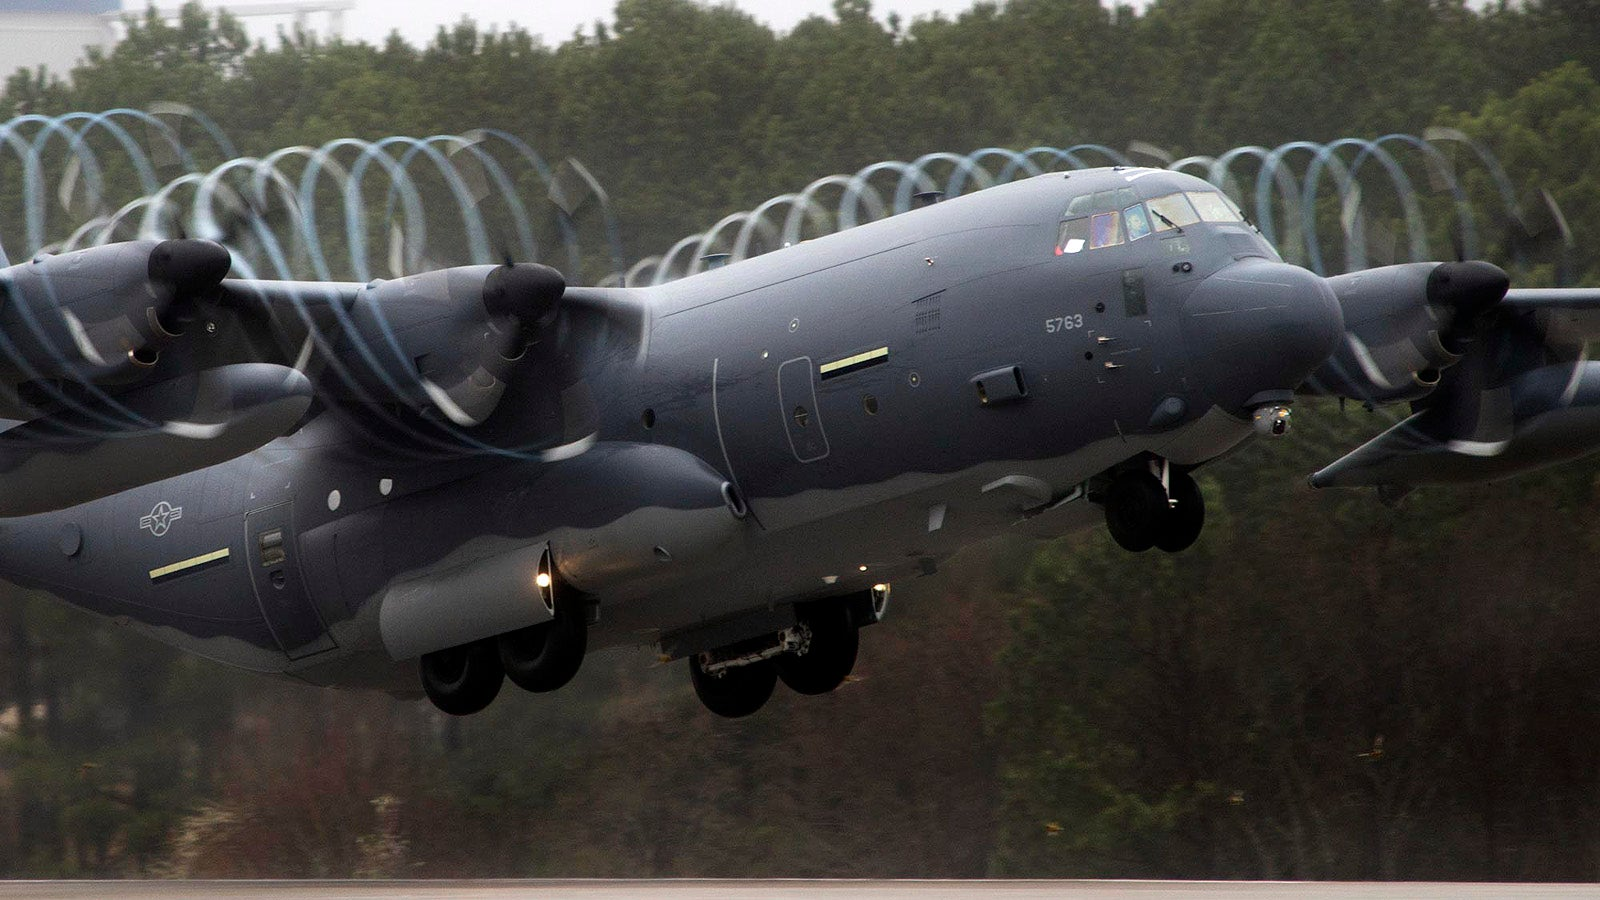 These Pretty Vortices Make This Super Hercules a Magical Aircraft